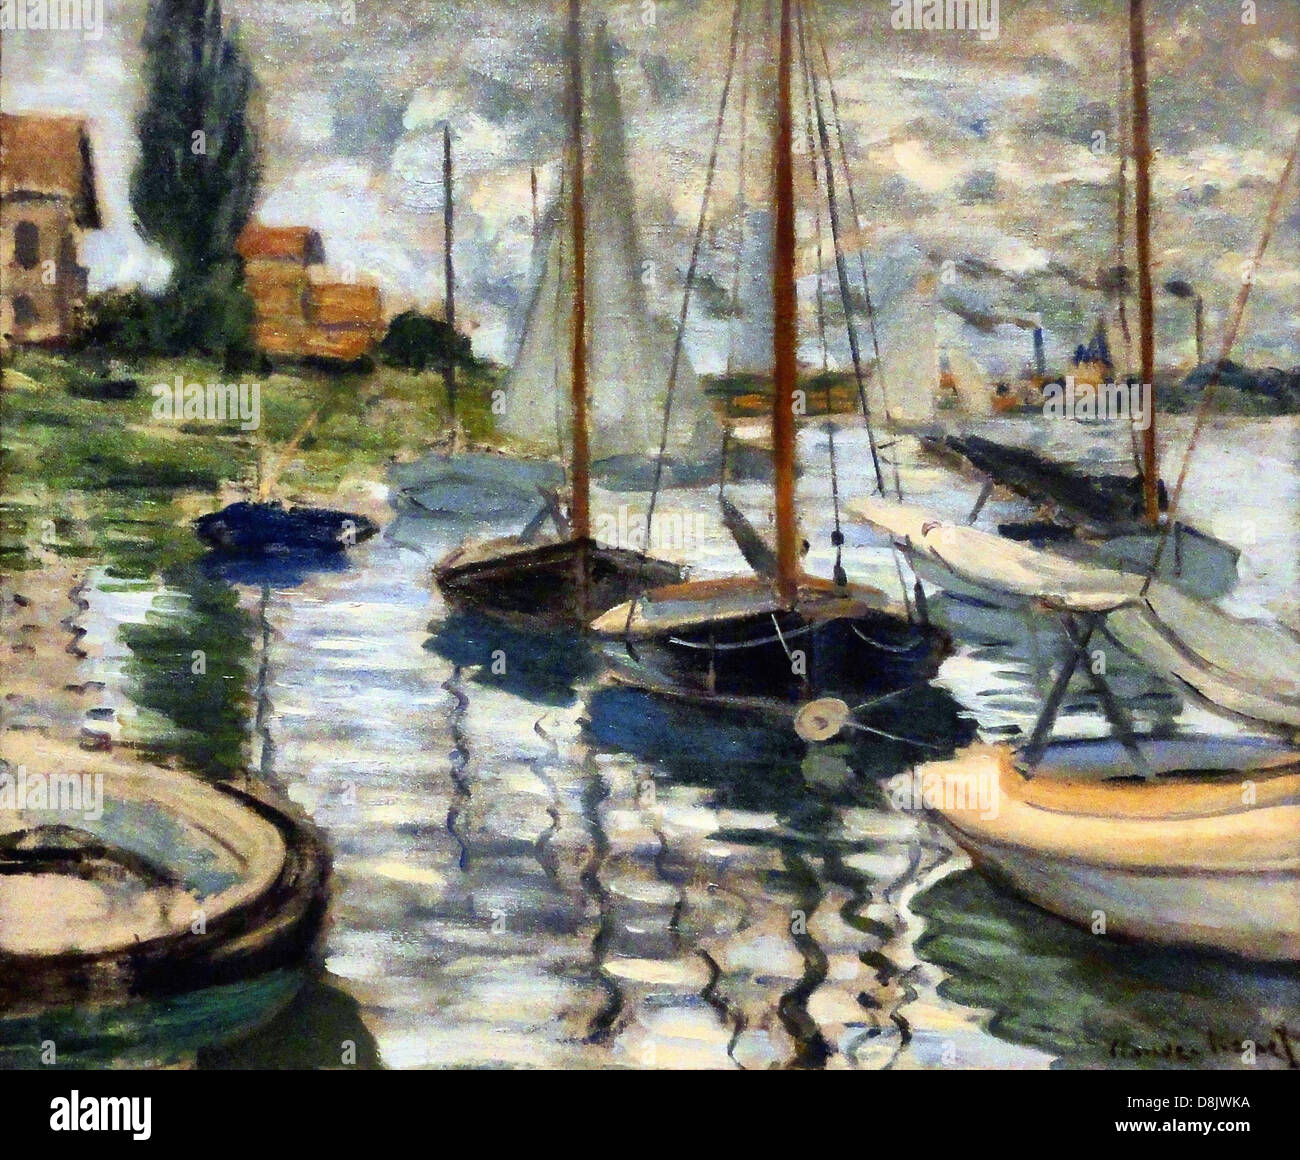 Claude Monet  SailBoats On The Seine Legion of Honor Museum - San Francisco - Stock Image